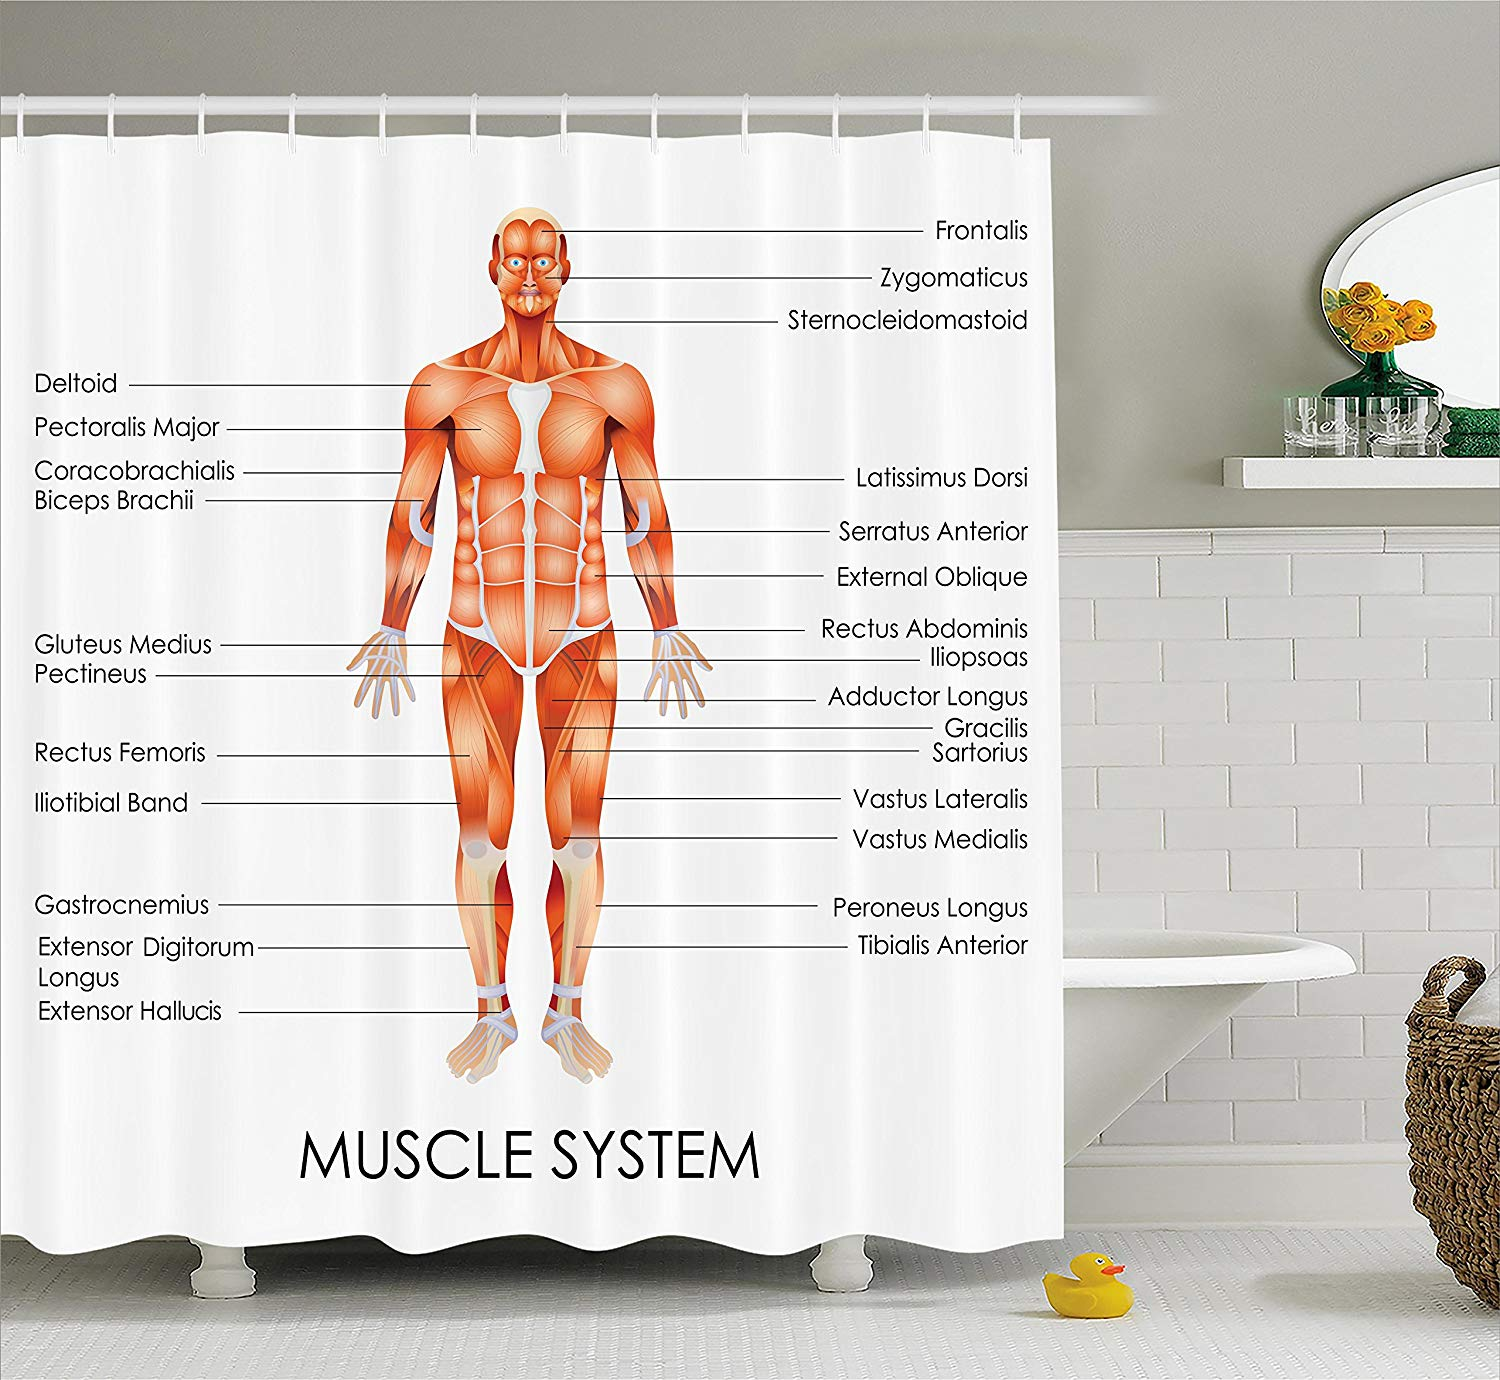 Human Anatomy Shower Curtain Muscle System Diagram Of Man Body Features Biological Elements Fabric Bathroom Decor Set With Hooks In Curtains From